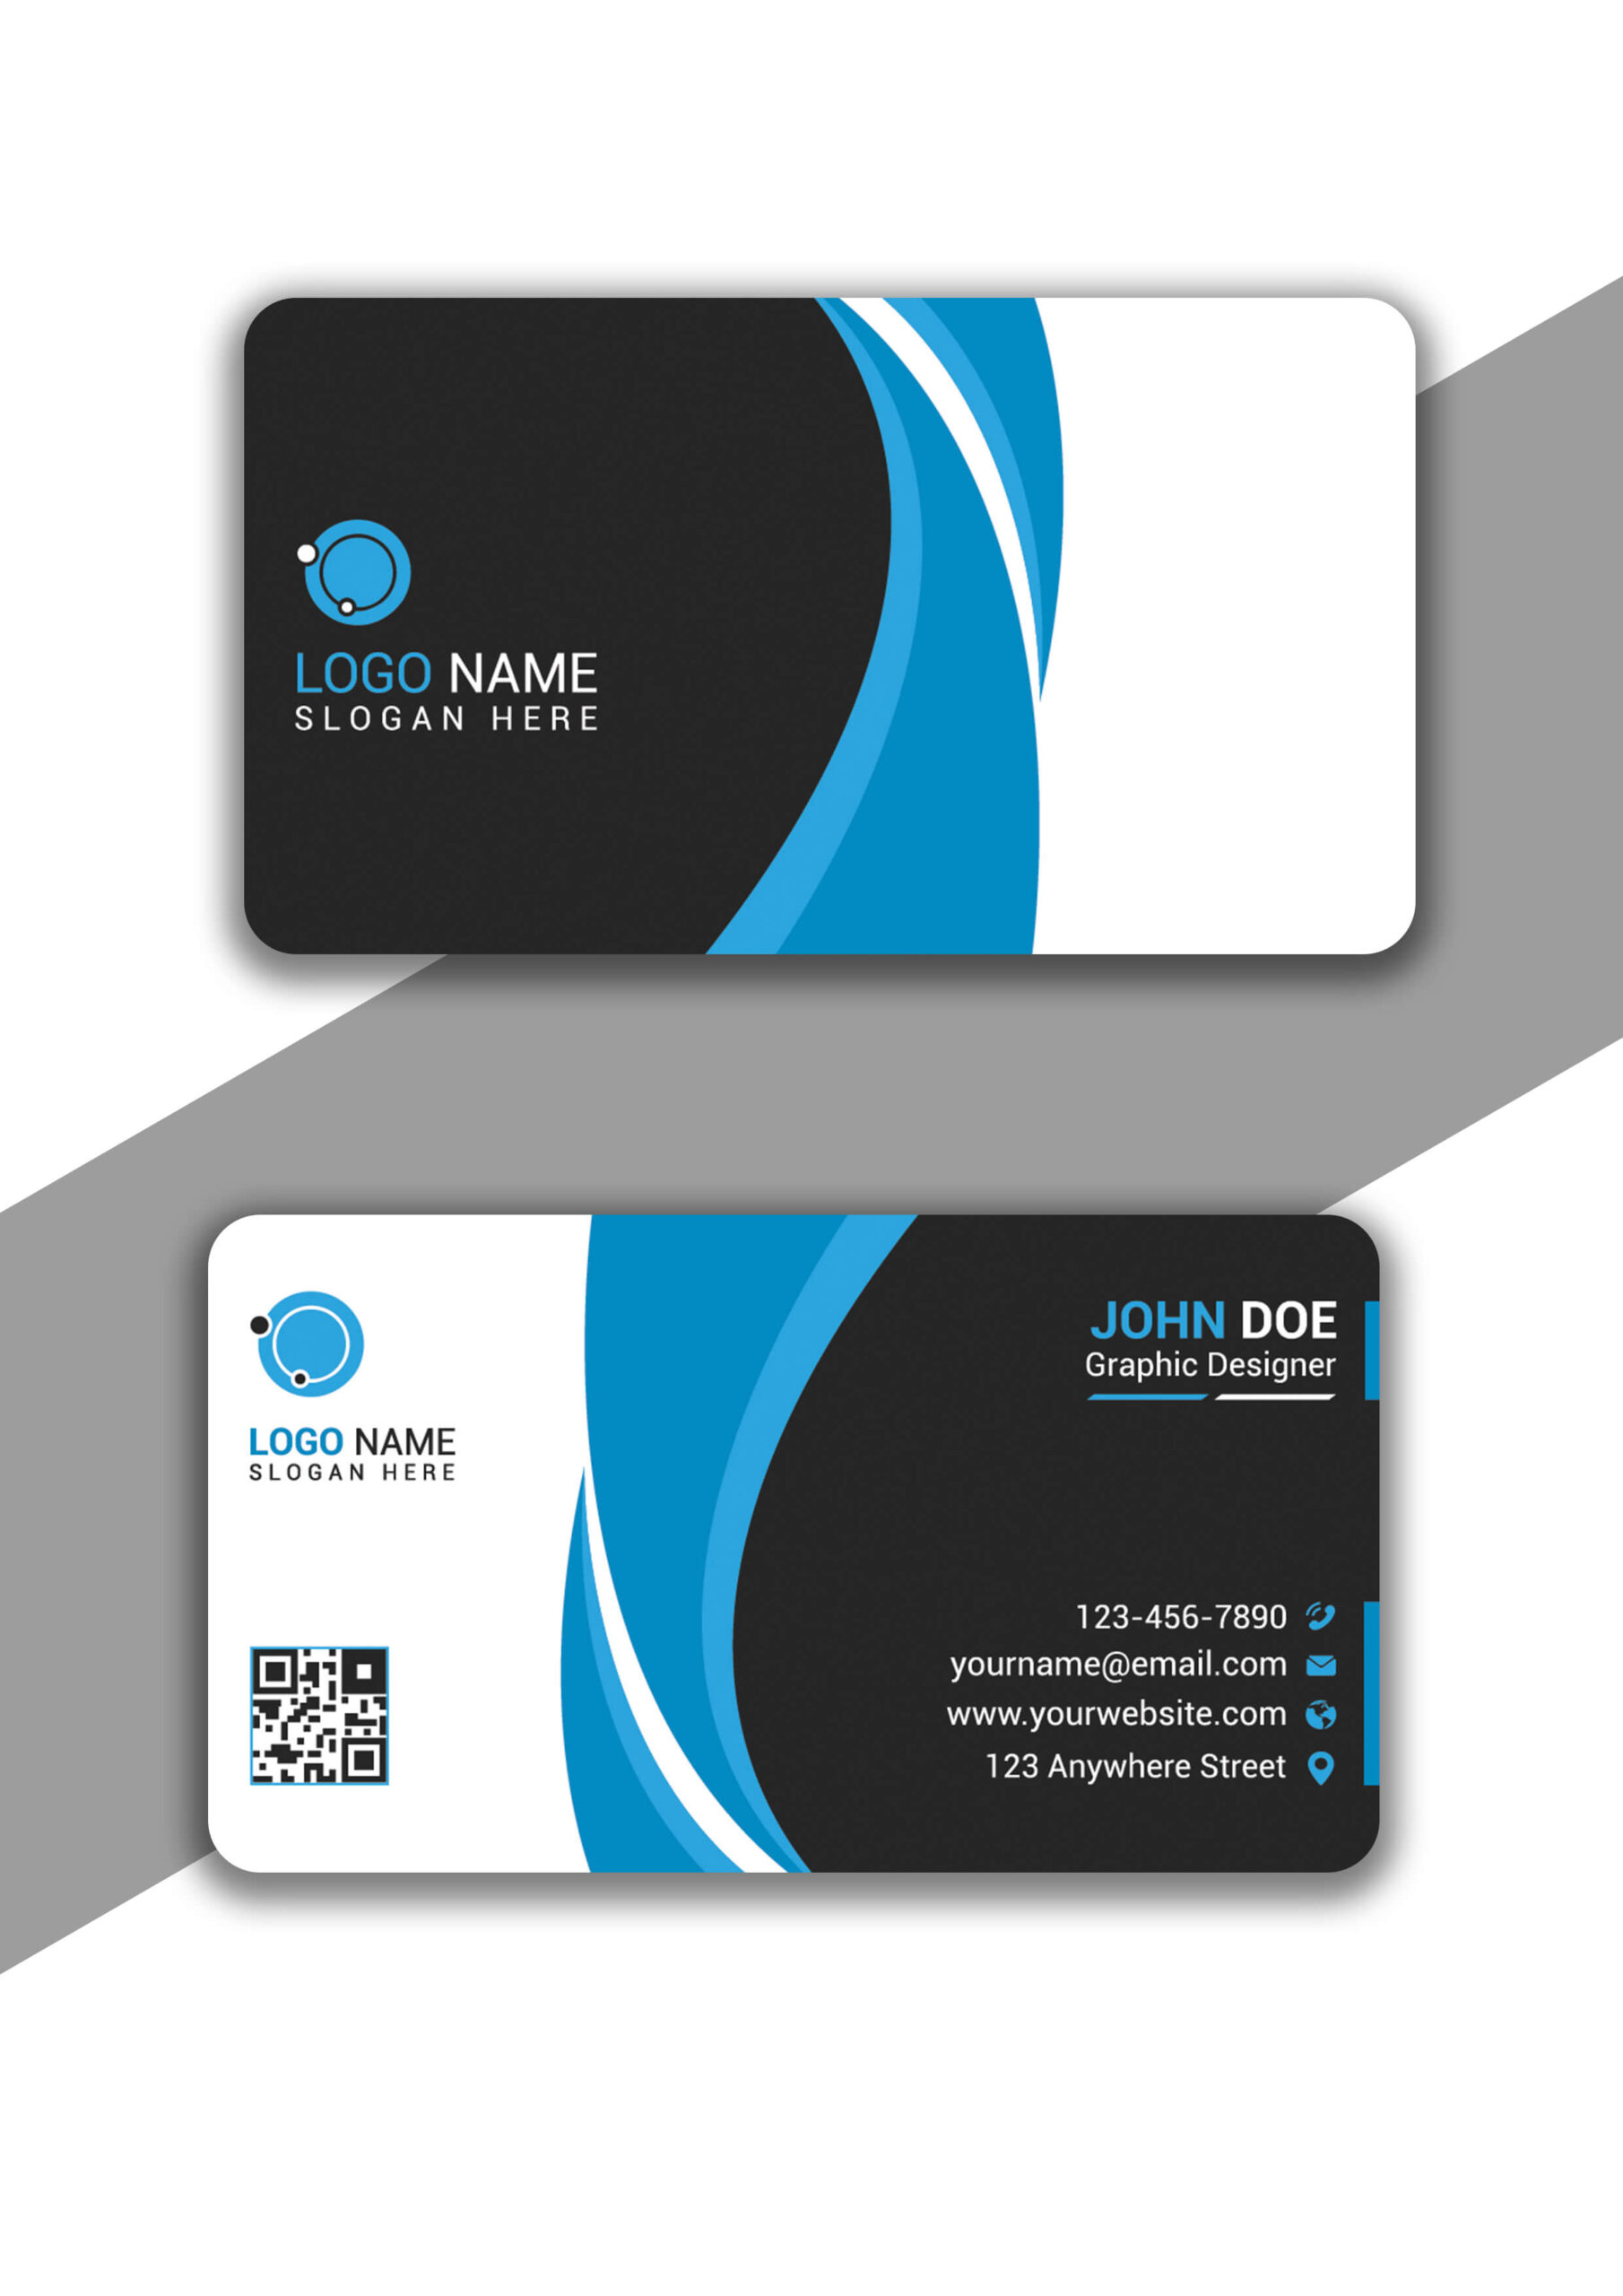 Eye Catching Cyan and Black Business Card in Illustrator